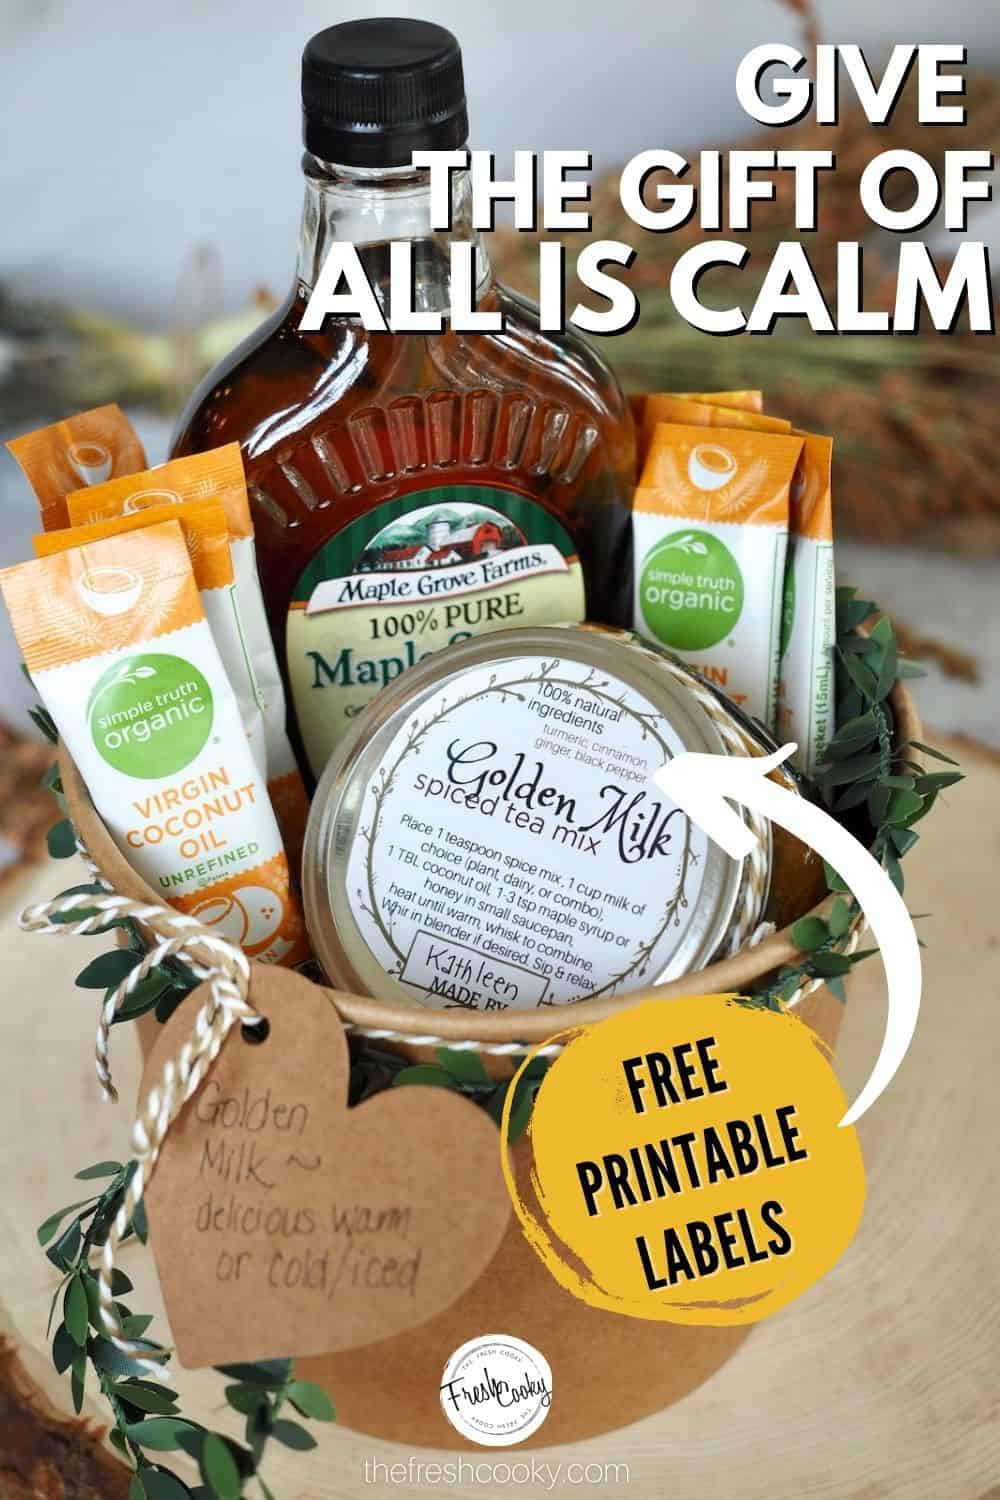 Gift the gift of health and calm this holiday season making these delicious, vegan Golden Milk gift baskets. #thefreshcooky #foodgifts #goldenmilkrecipe via @thefreshcooky